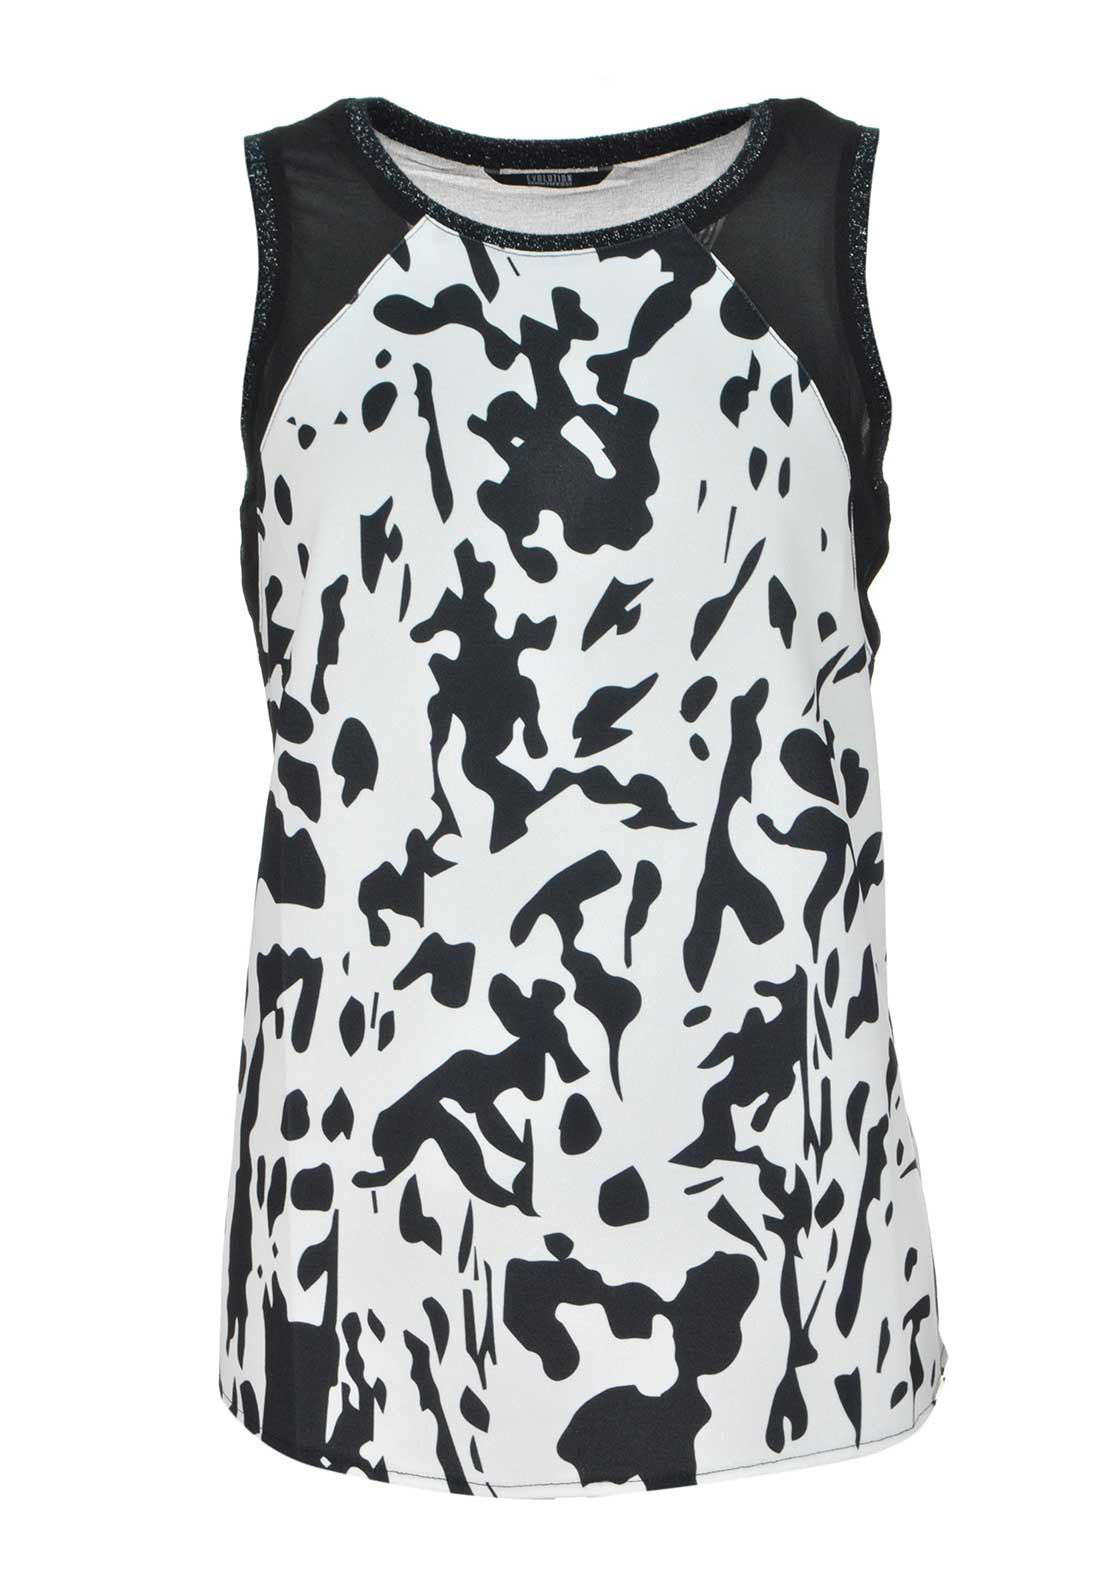 Tiffosi Clara Sleeveless Abstract Print Top, Black and White